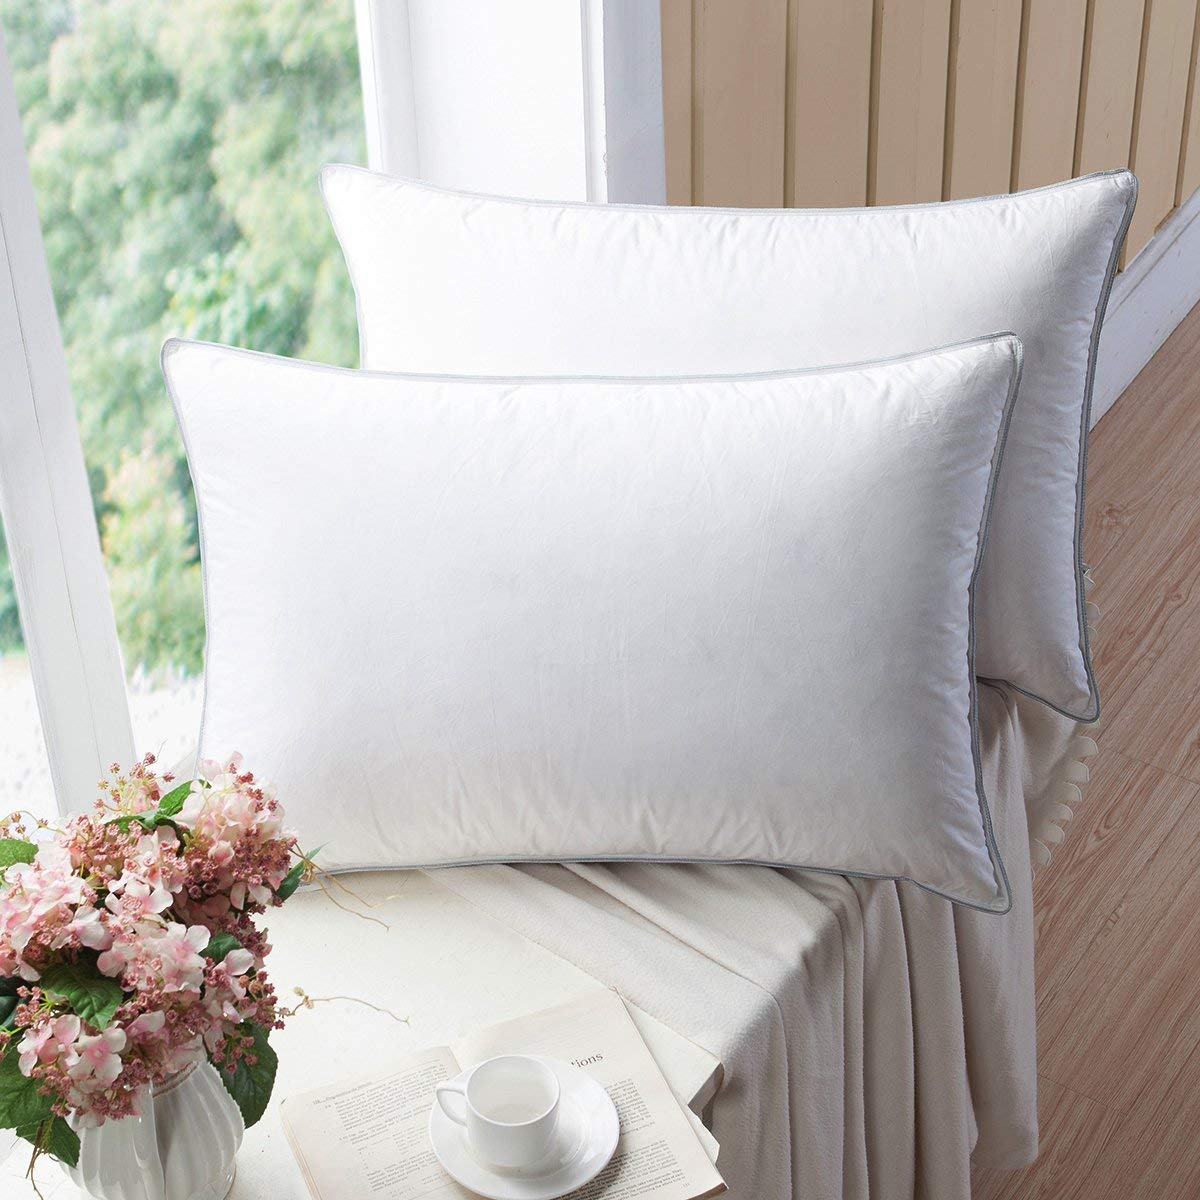 WENERSI best feather pillows review by www.dailysleep.org